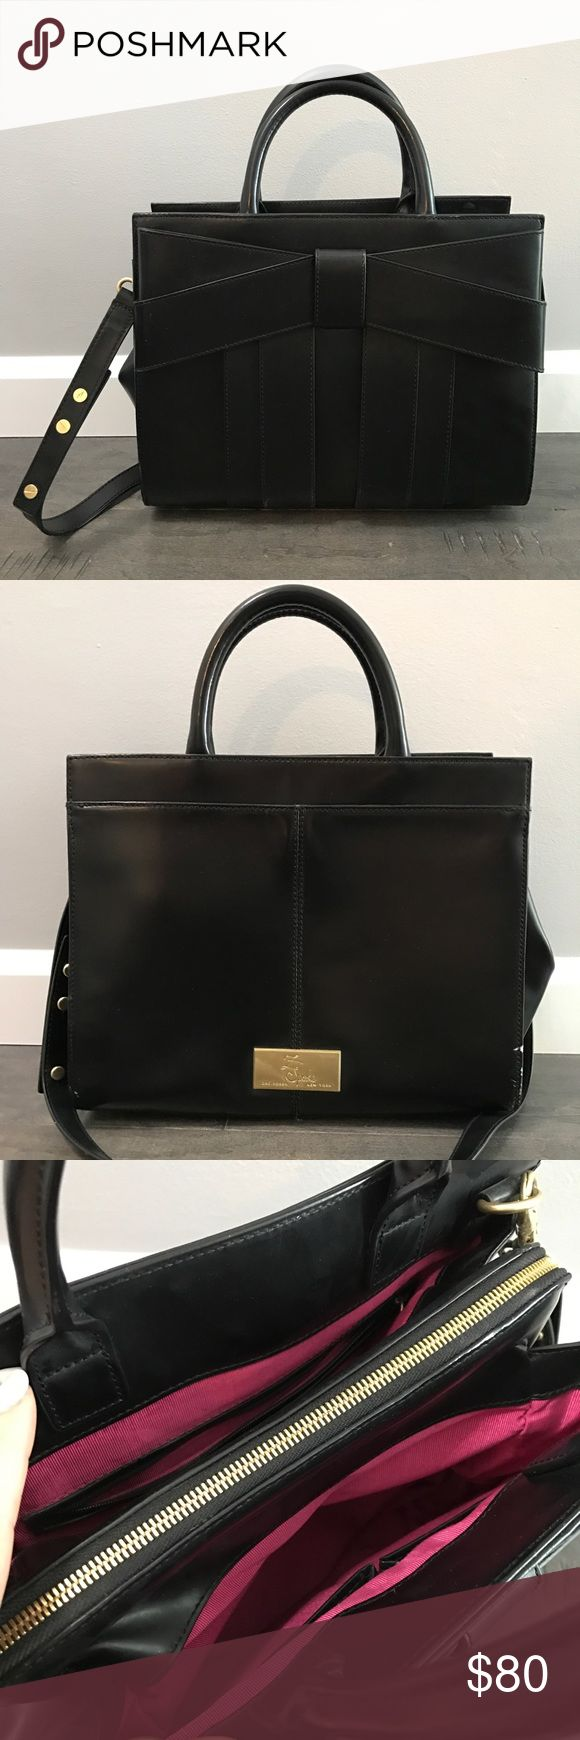 """Z Spoke by Zac Posen Handbag Condition  - Gently used - Pre-owned. Excellent condition. Few minor scratches on leather   Description  - Exterior: Leather. Rolled handles. Gold toned hardware - Removable and adjustable shoulder strap - Interior: Pink woven lining. Back wall zip pocket. Two slip pockets. Zip closure  Designer: Z Spoke by Zac Posen Material: Leather Color: Black Approx measurements: 12""""L x 10""""H x 41/2""""D Handle Drop: 4"""" Strap length: 38"""" Z Spoke by Zac Posen Bags Satchels"""